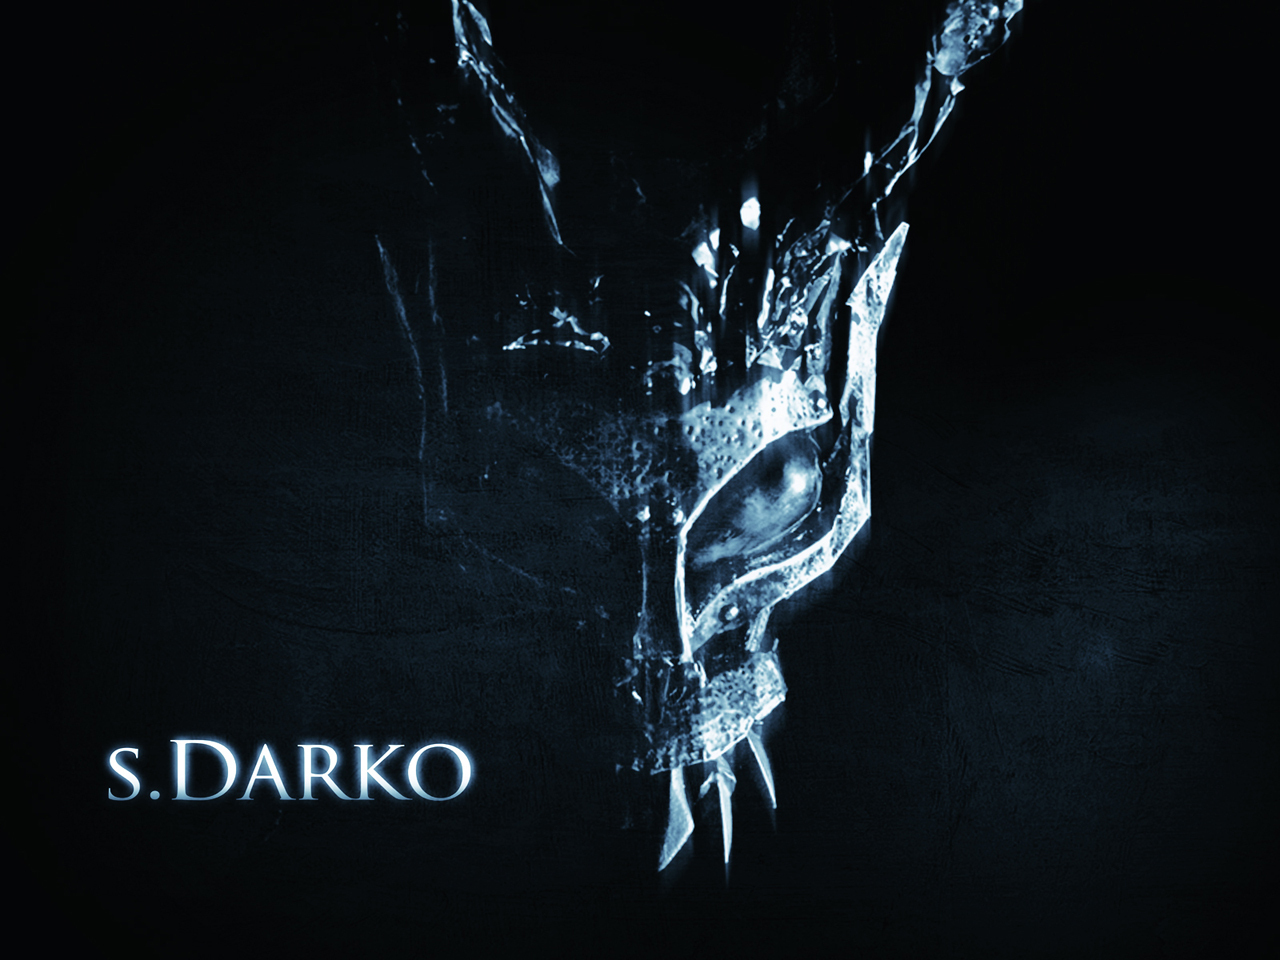 Horror Movies S. Darko Wallpaper 2